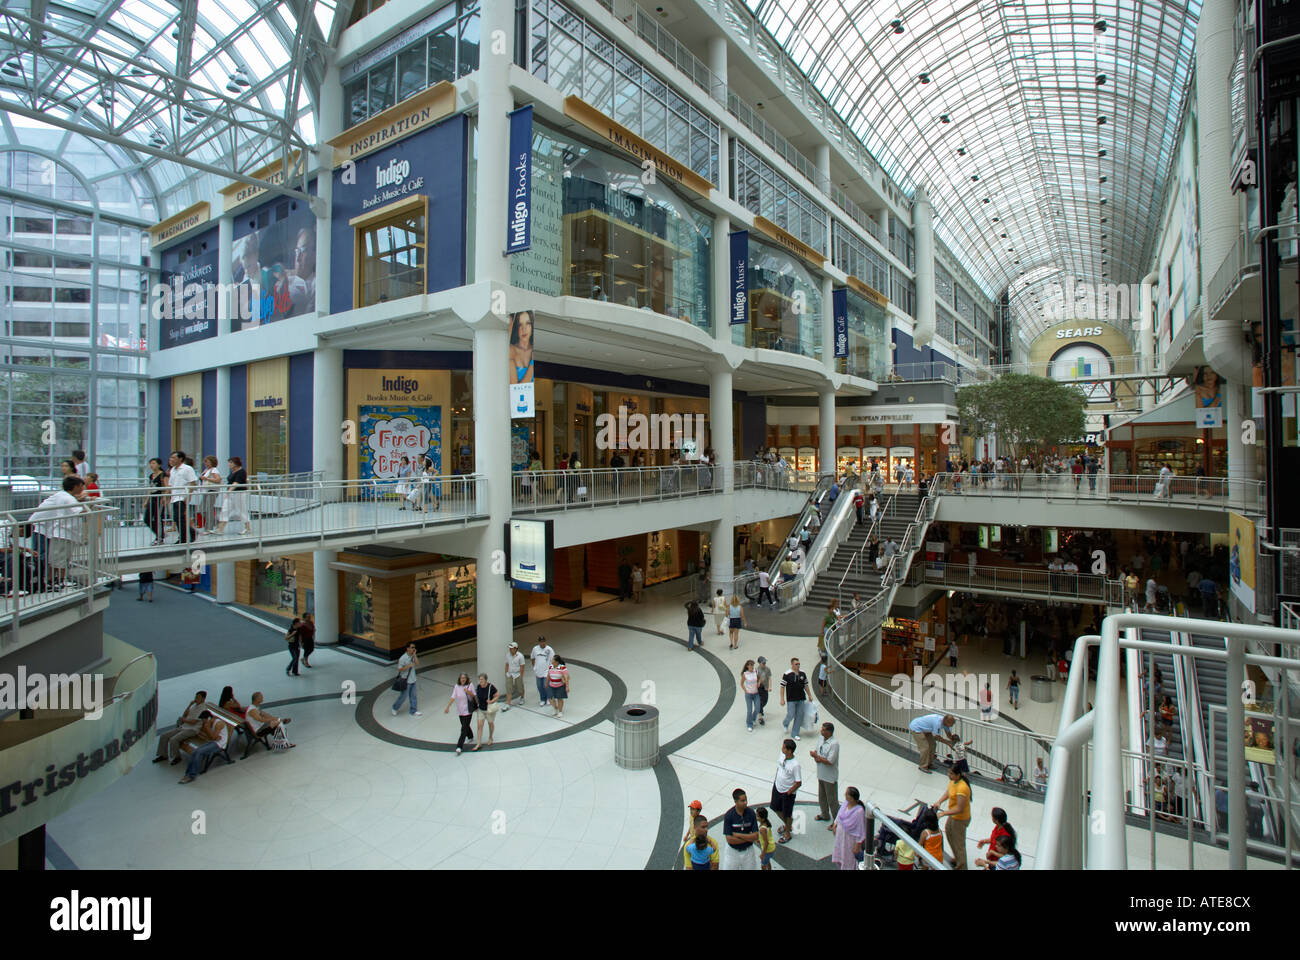 the-toronto-eaton-centre-shopping-mall-canada-ATE8CX.jpg